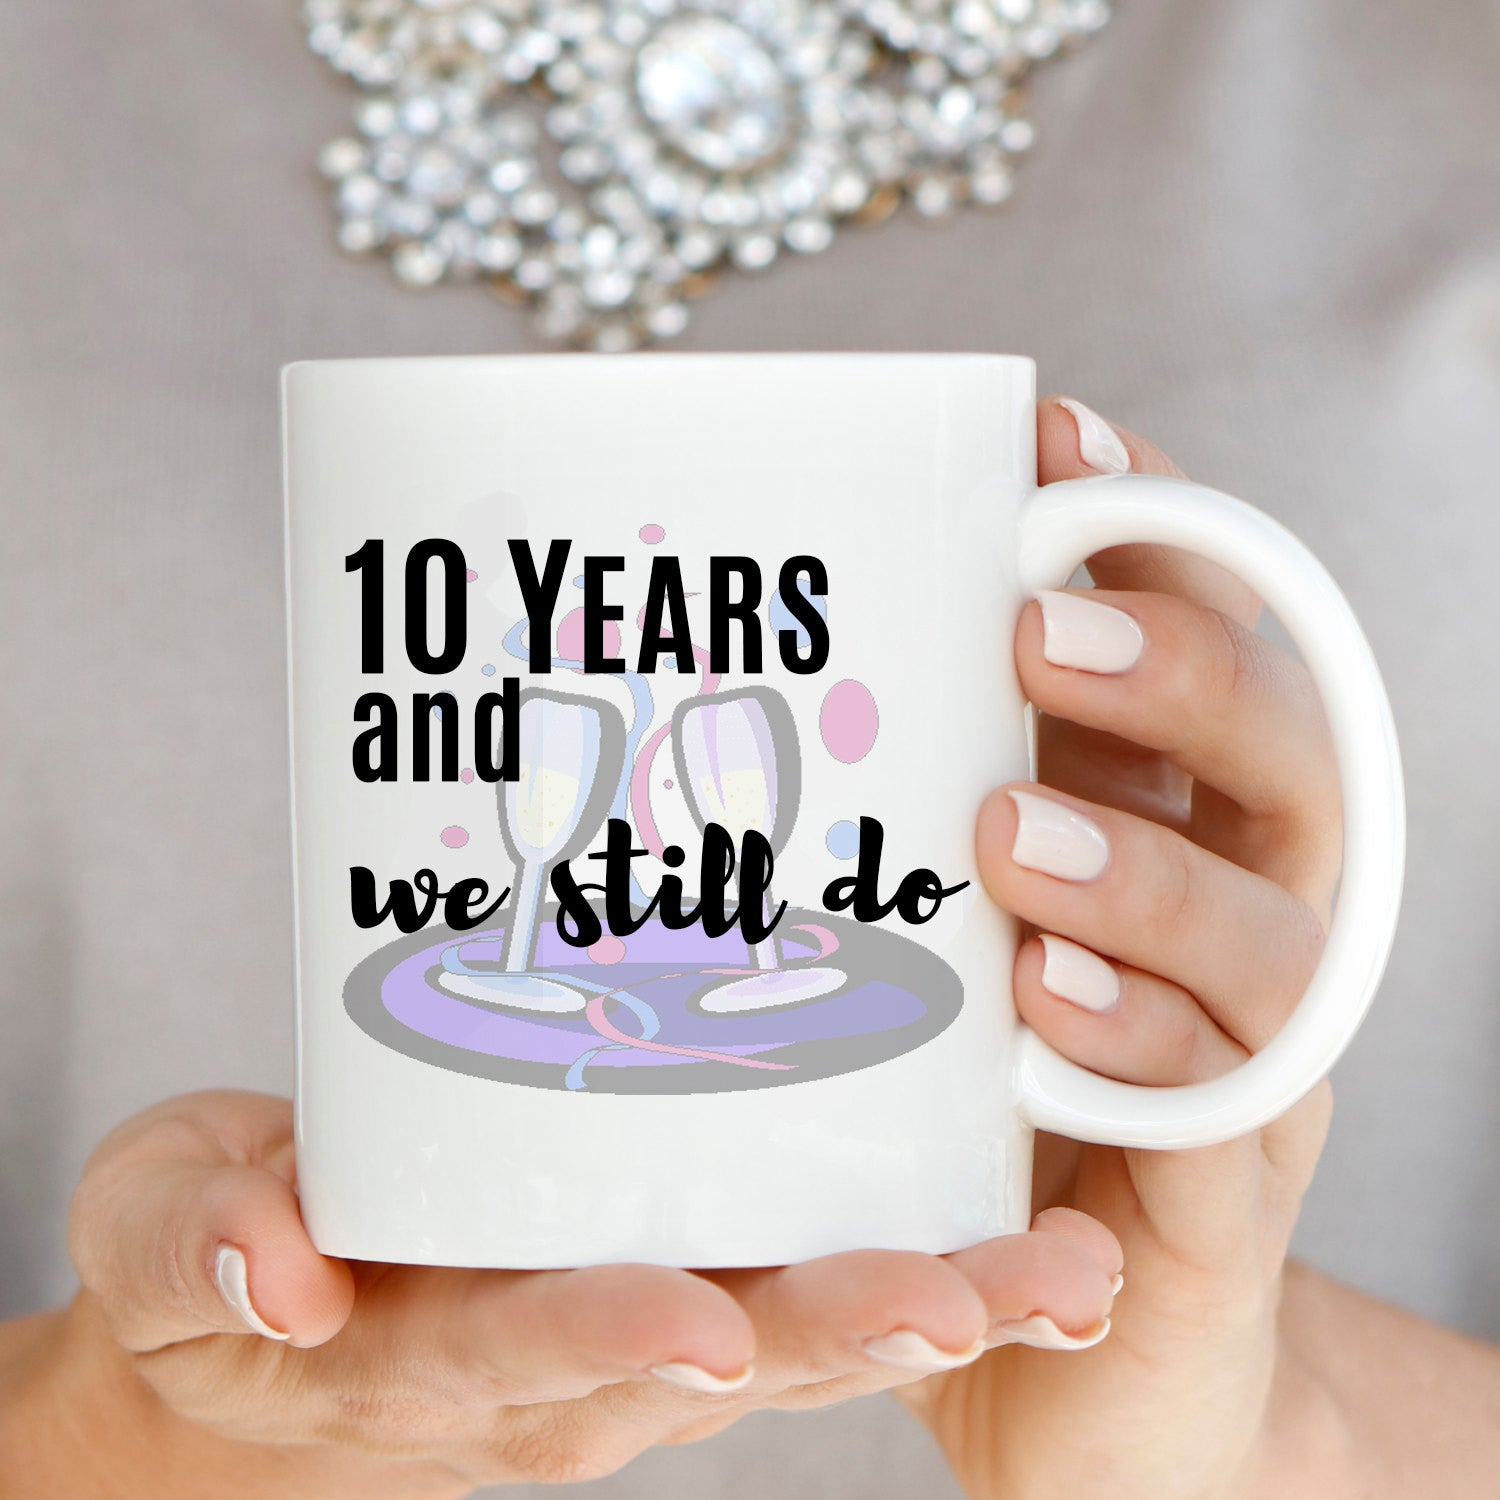 Personalized! Years Of Marriage Wedding Anniversary Gifts